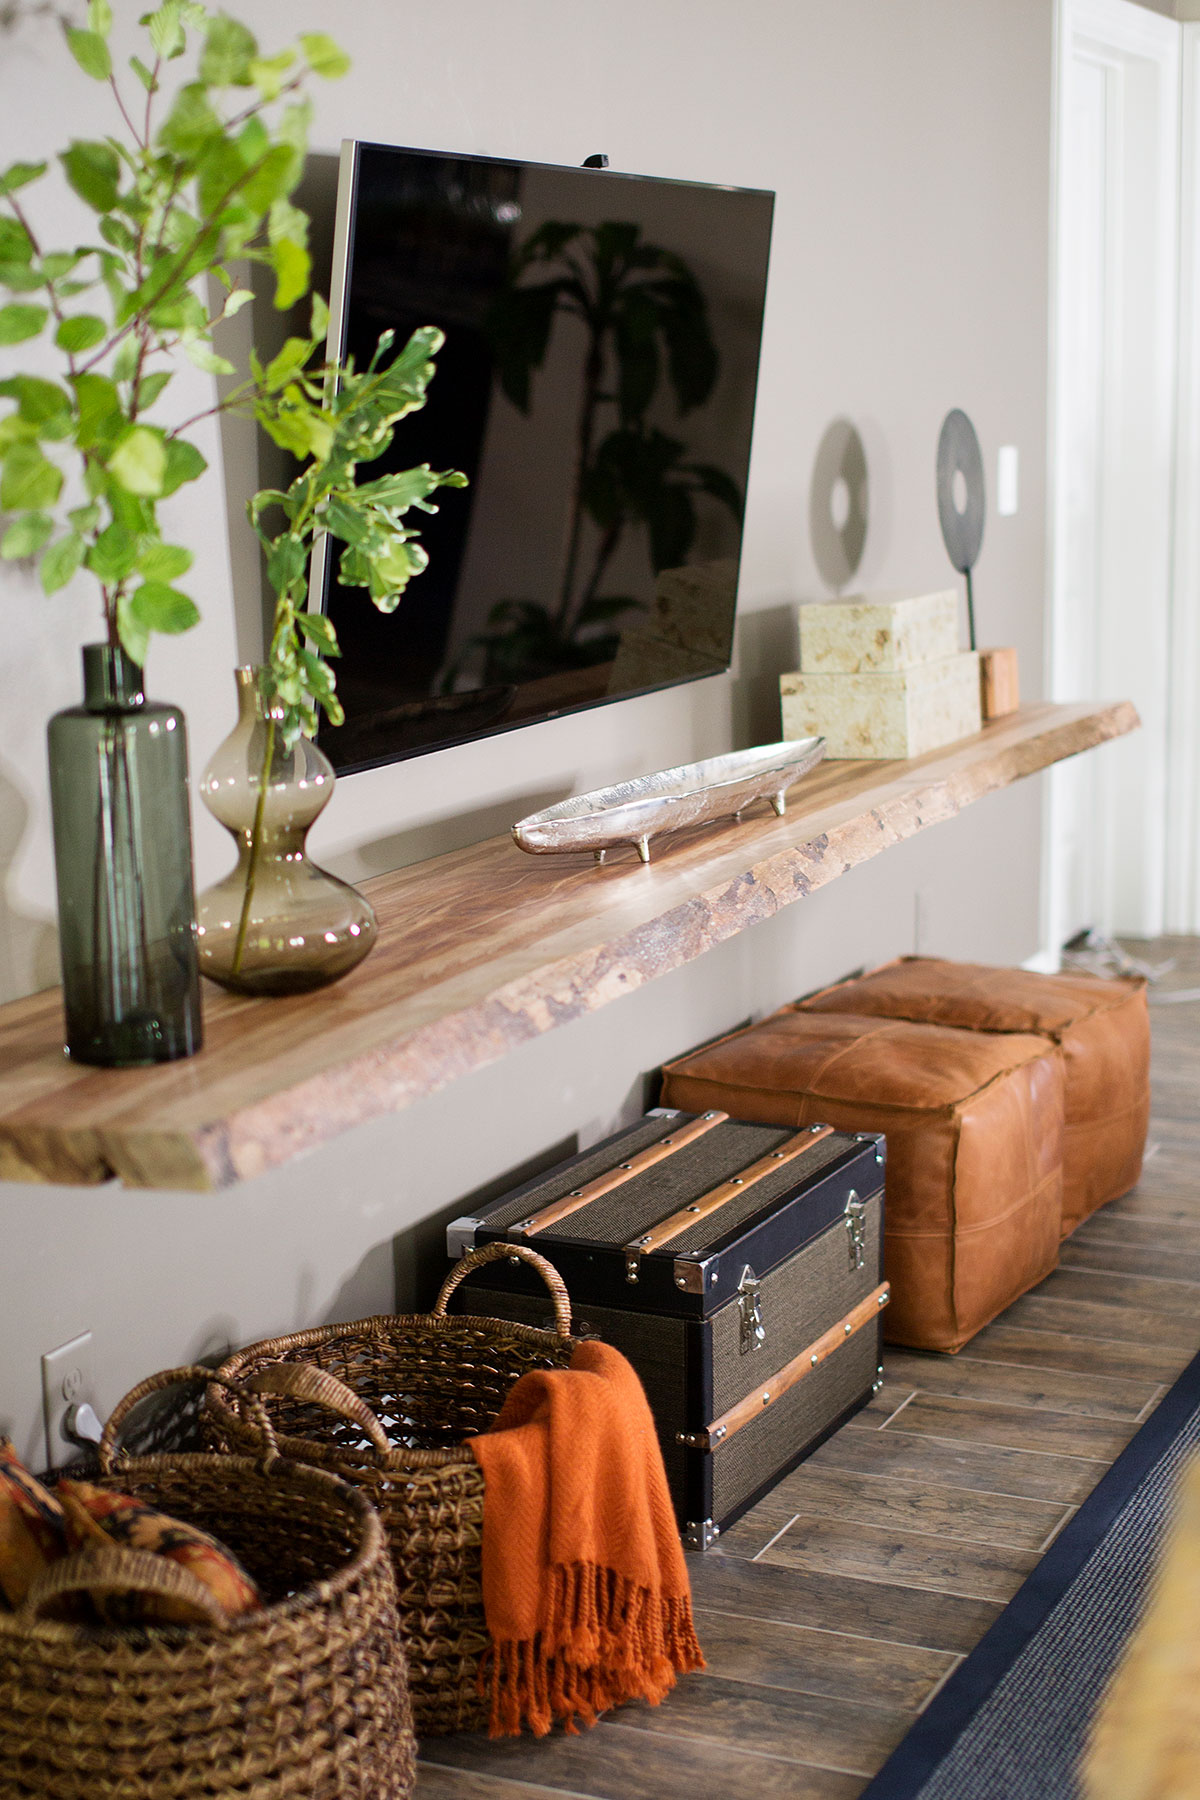 Reclaimed wood ledge with storage baskets underneath